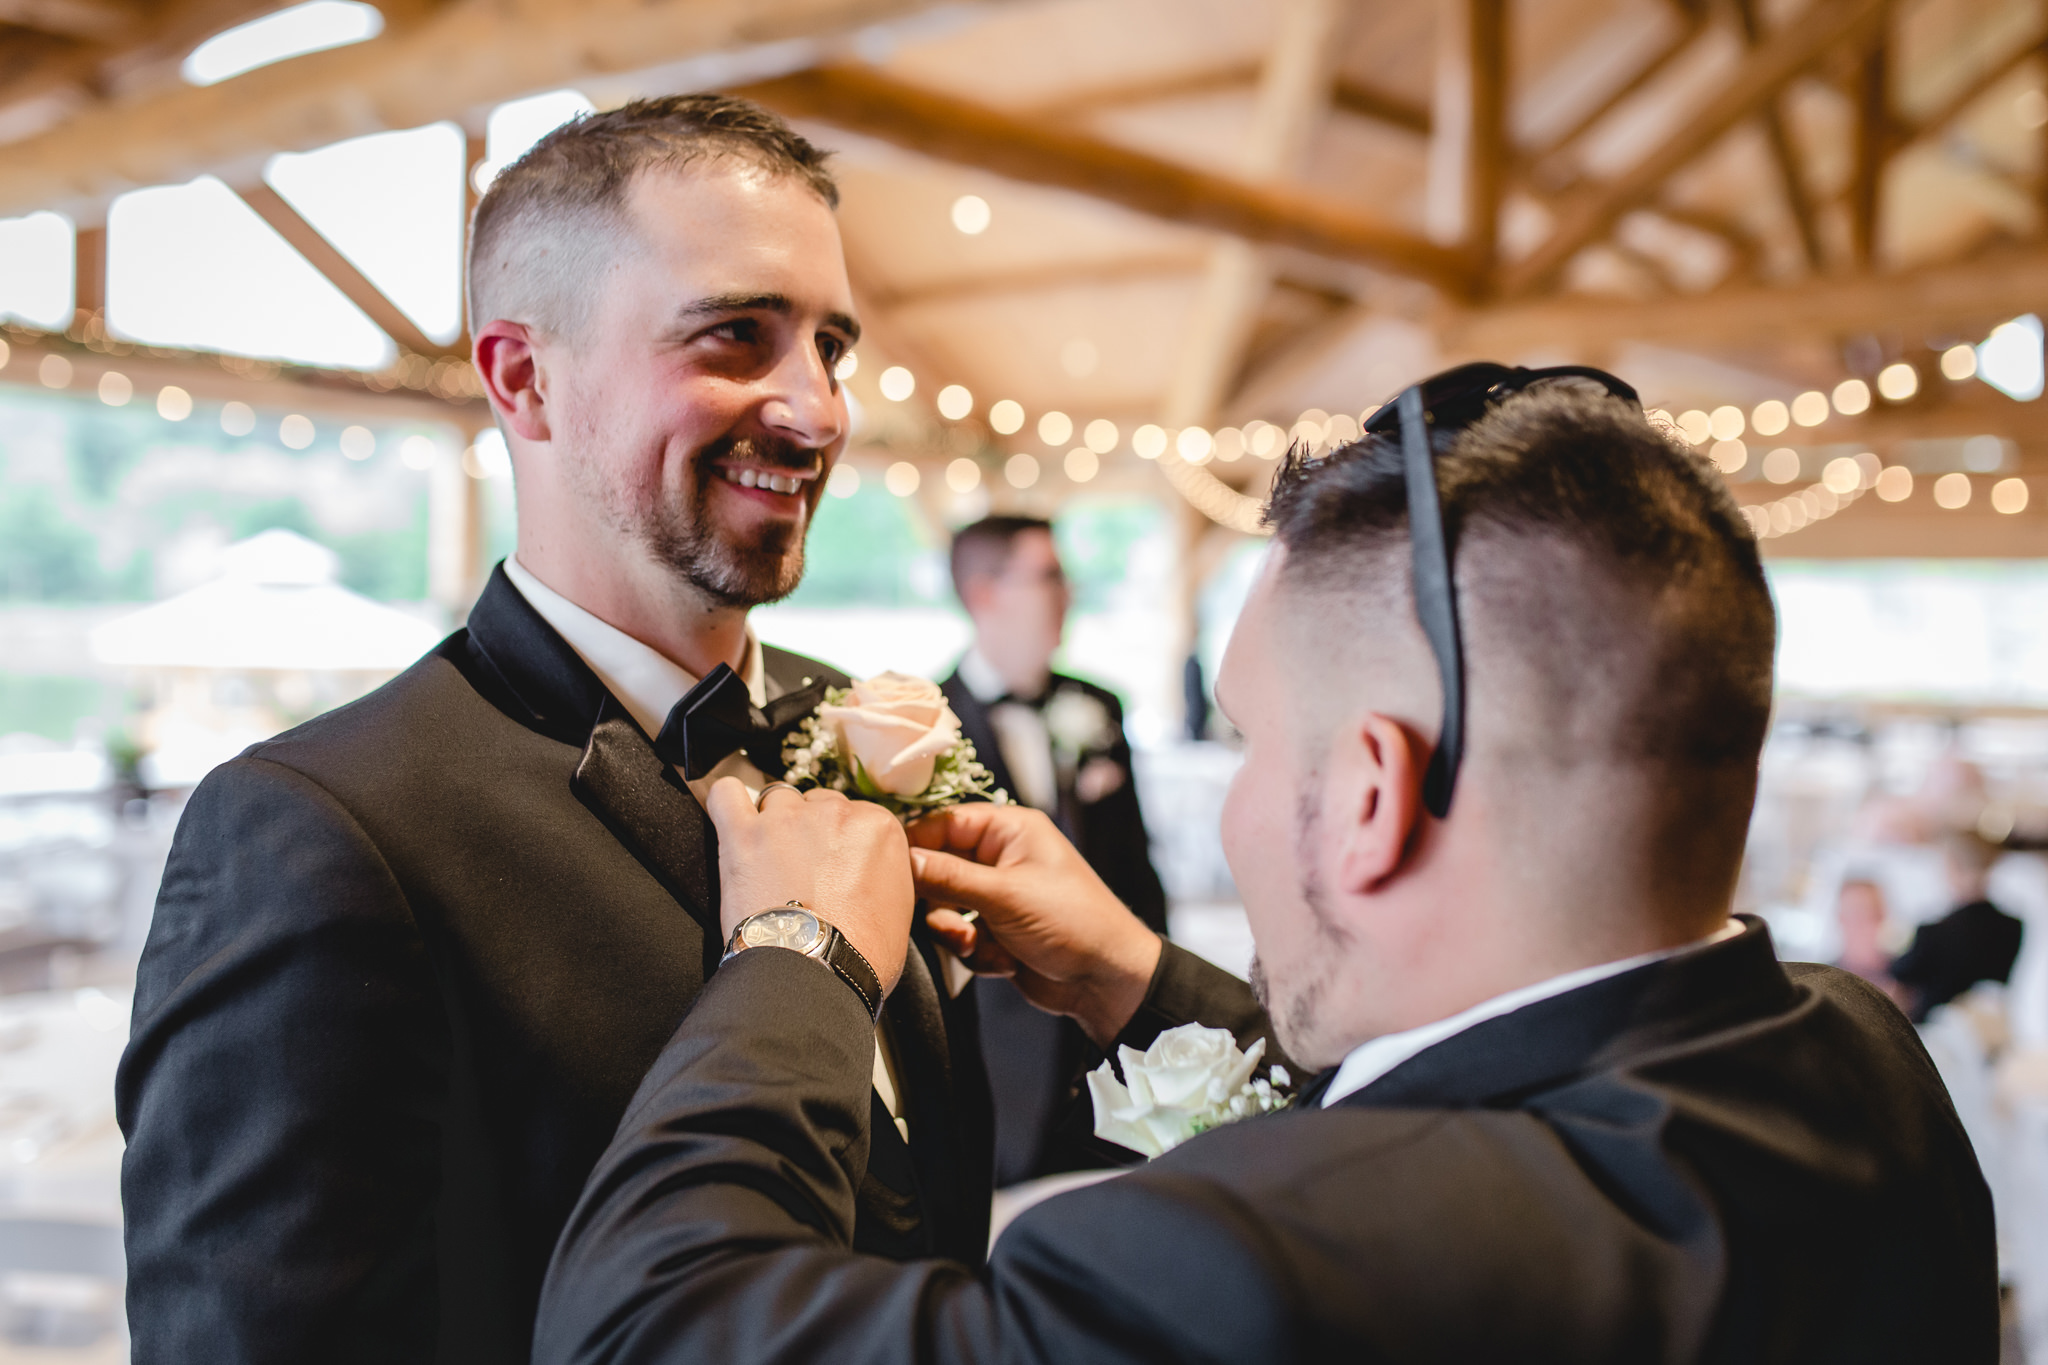 Groomsman fixes the groom's boutonniere at the Gathering Place at Darlington Lake